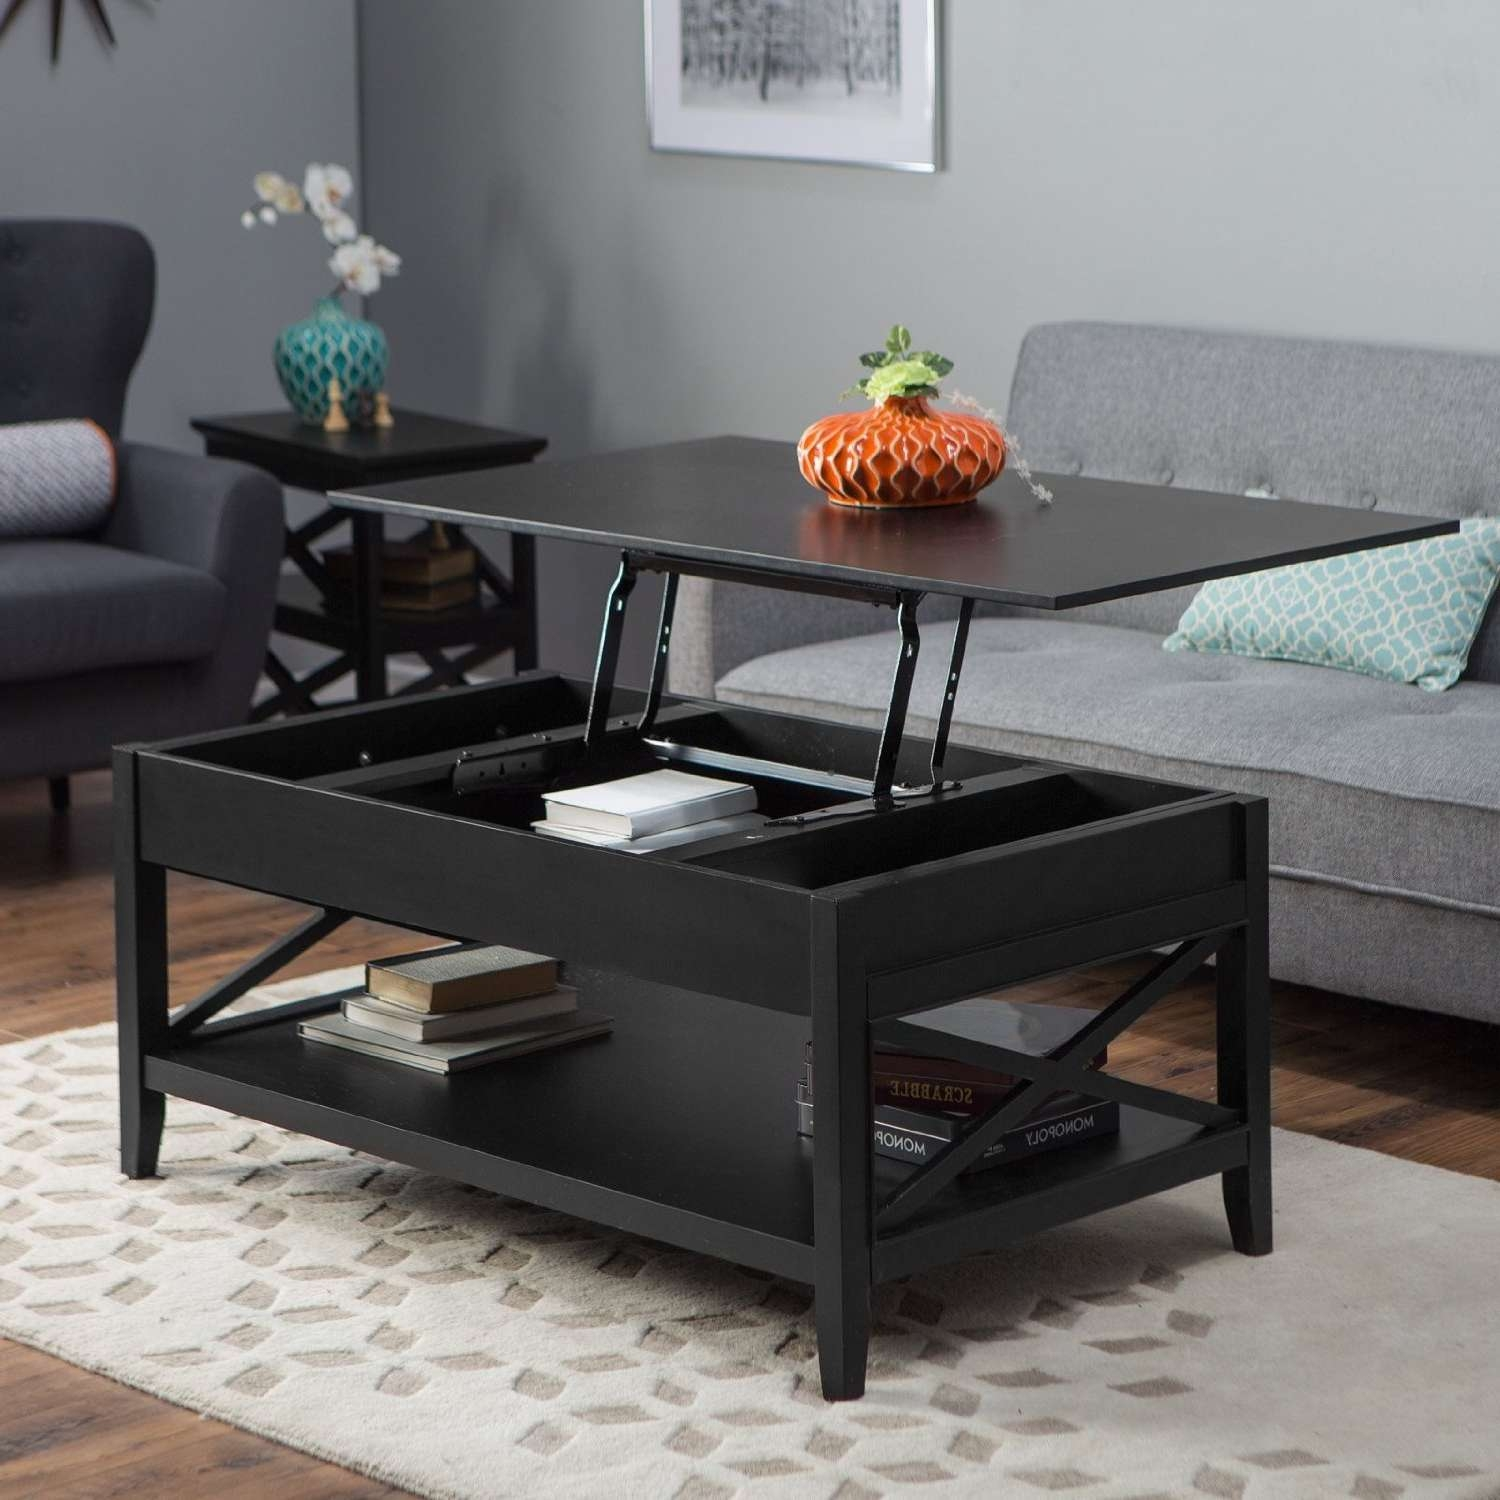 Famous Coffee Tables With Raisable Top Intended For Coffee Tables : Coffee Table With Storage And Lift Top Raisable (View 19 of 20)